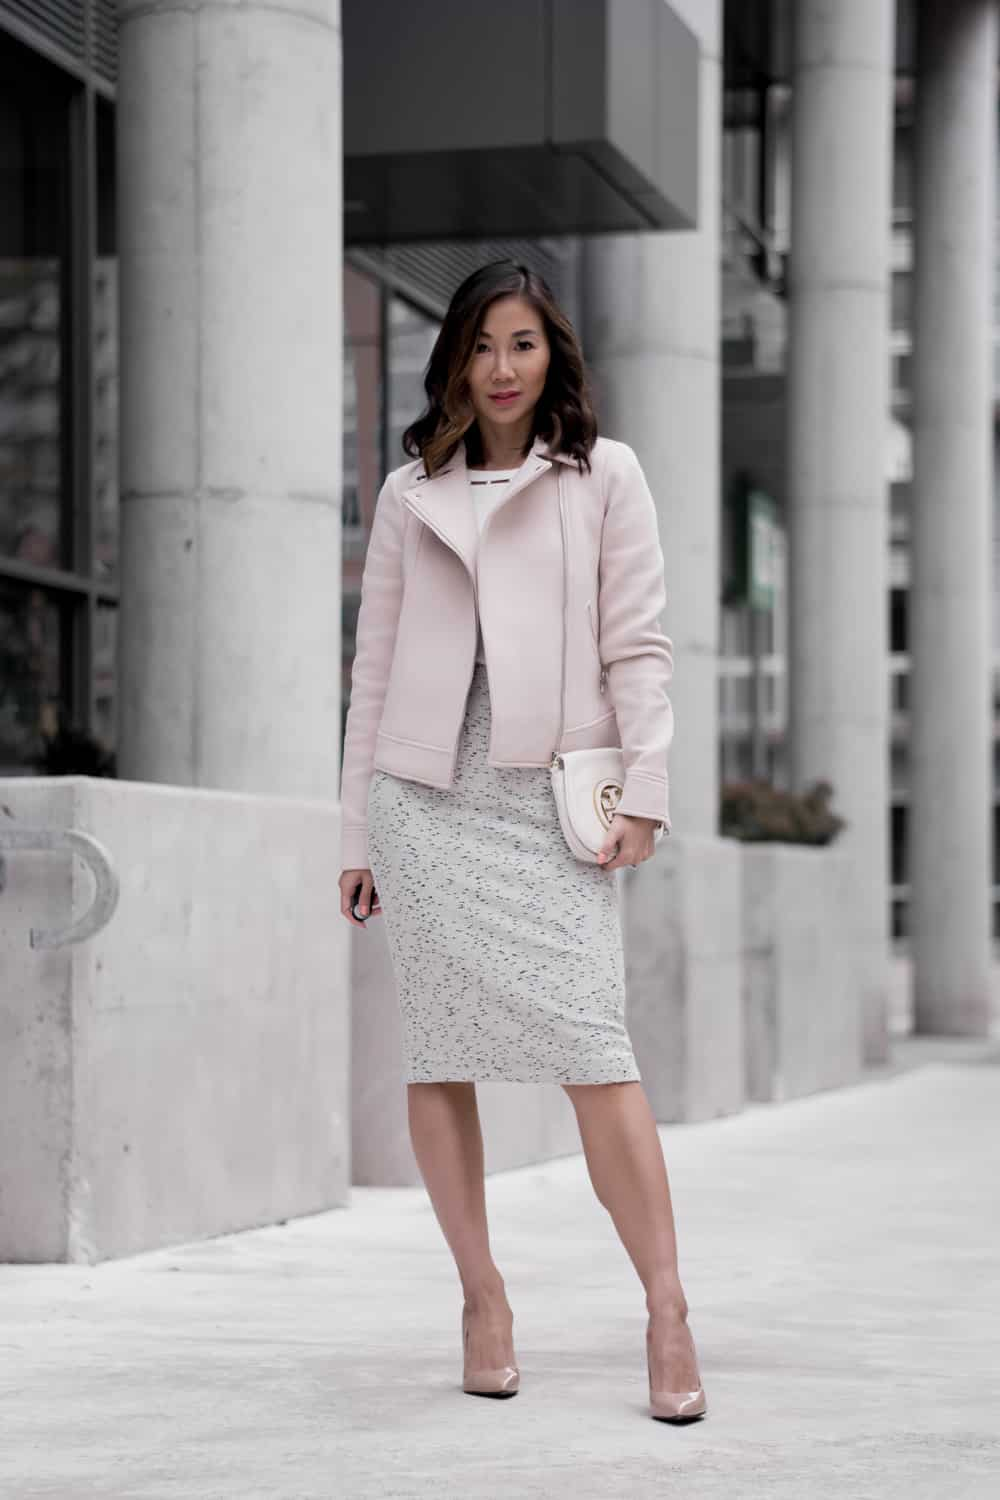 Office Look: #ootd with Ann Taylor pencil skirt, white blouse, pink moto jacket and nude pumps